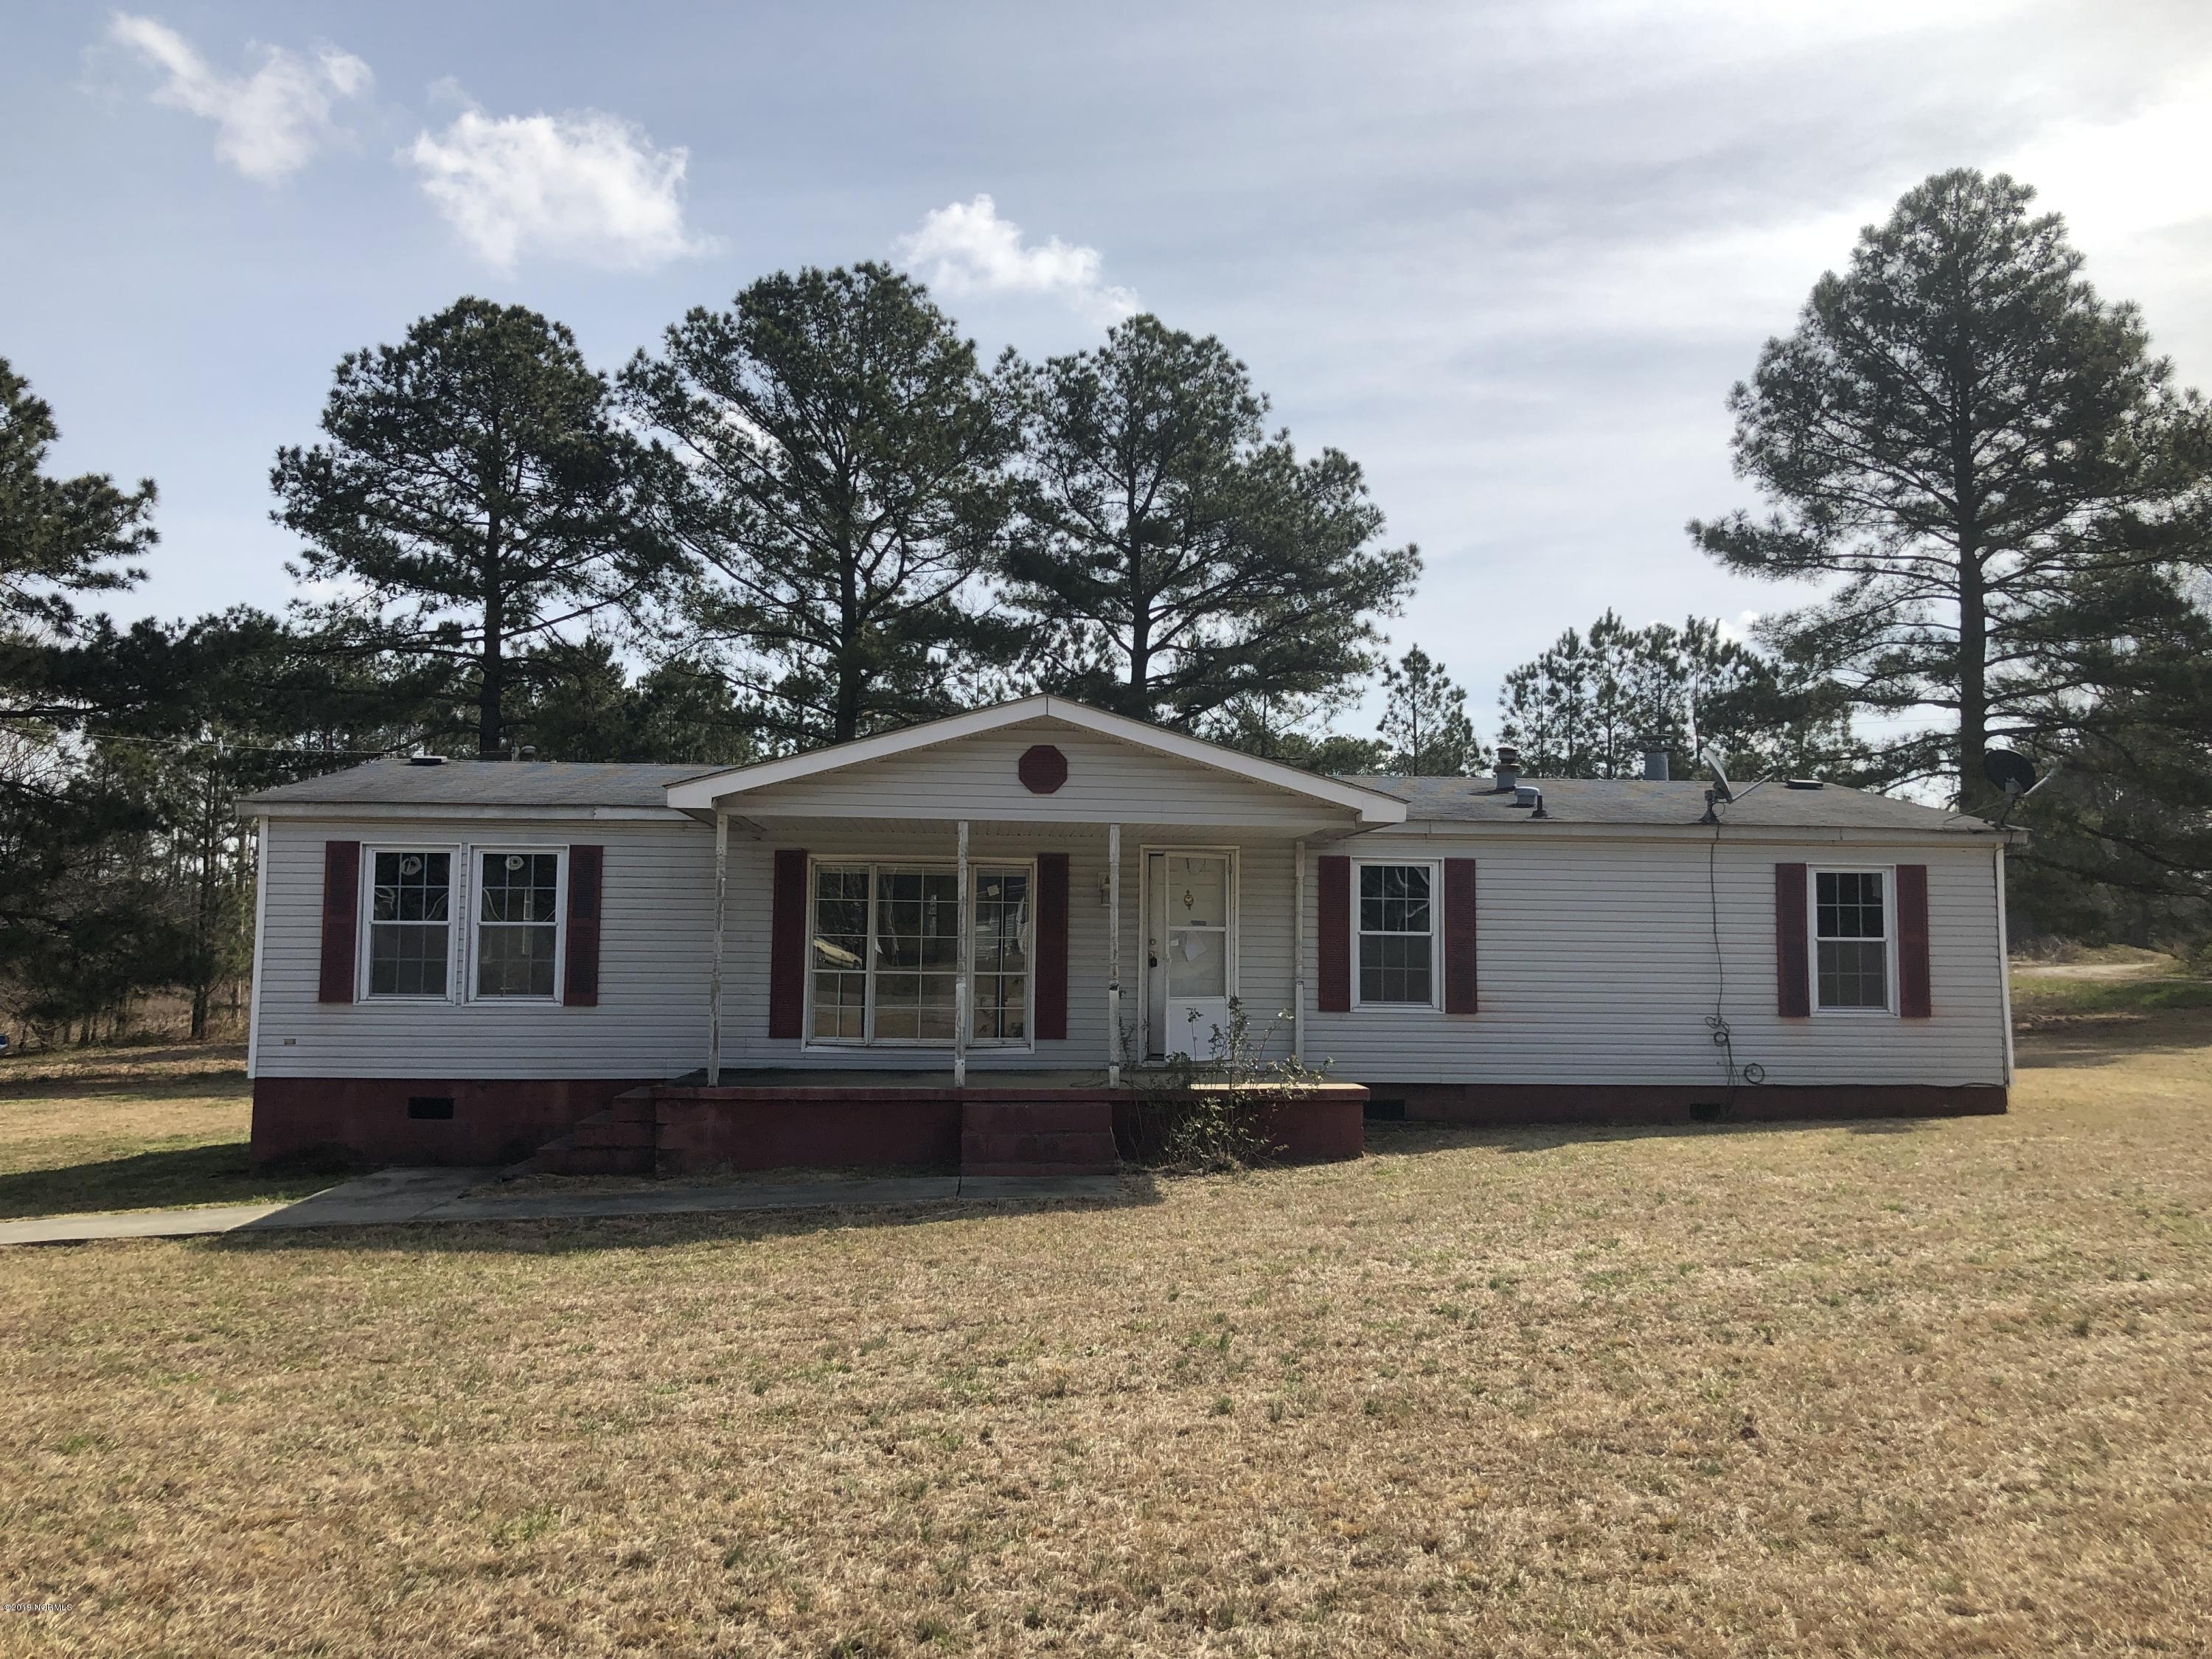 920 Reeses Store Road, Halifax, North Carolina, 3 Bedrooms Bedrooms, 5 Rooms Rooms,2 BathroomsBathrooms,Manufactured home,For sale,Reeses Store,100156105